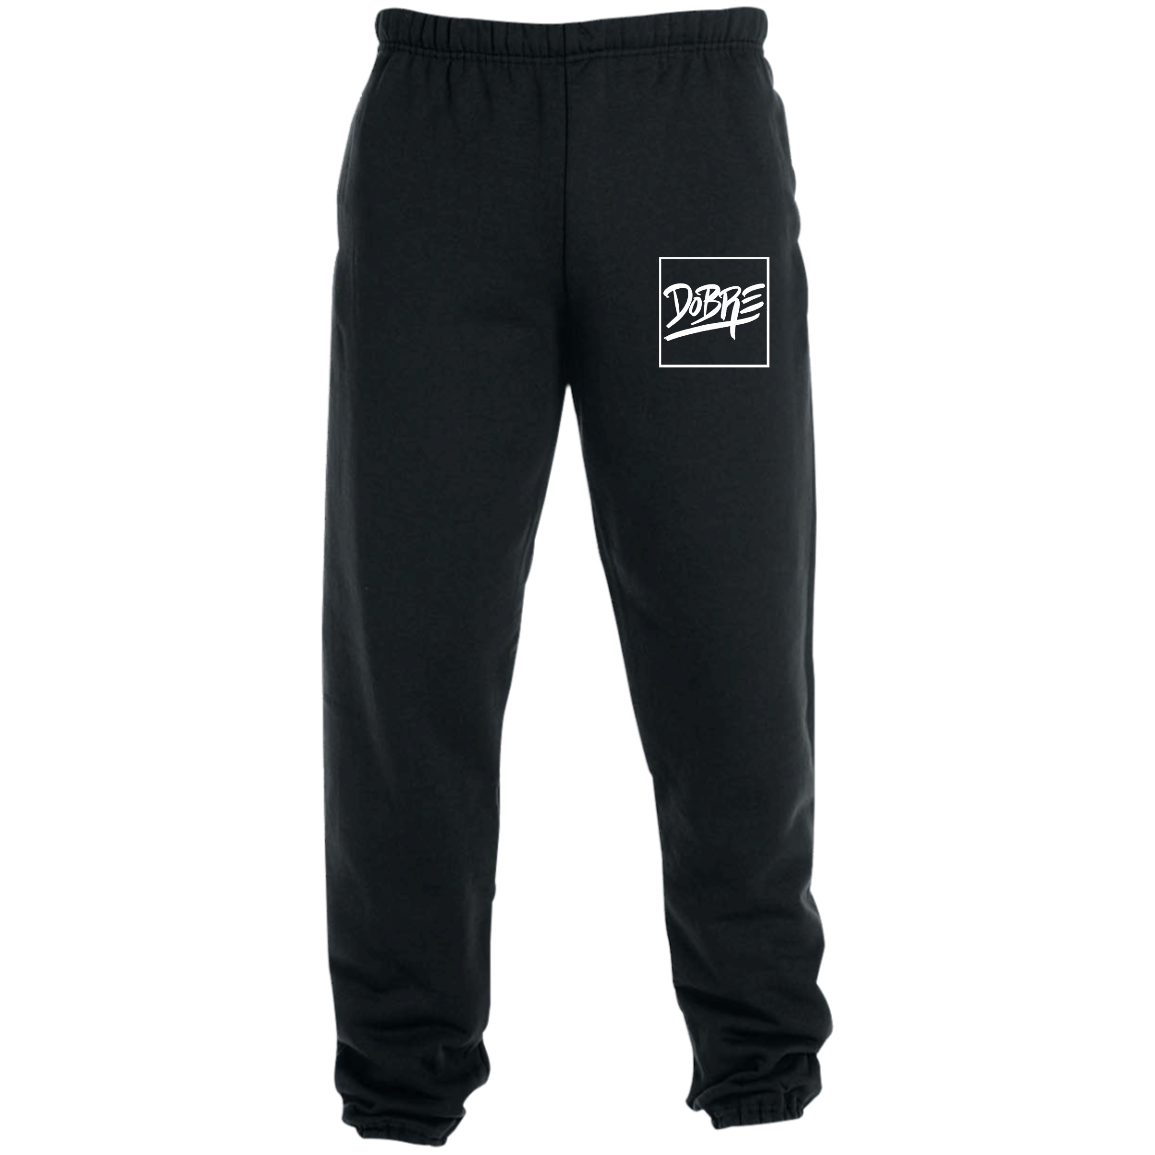 Dobre Twins Dobre Brothers 4850MP Jerzees Sweatpants with Pockets